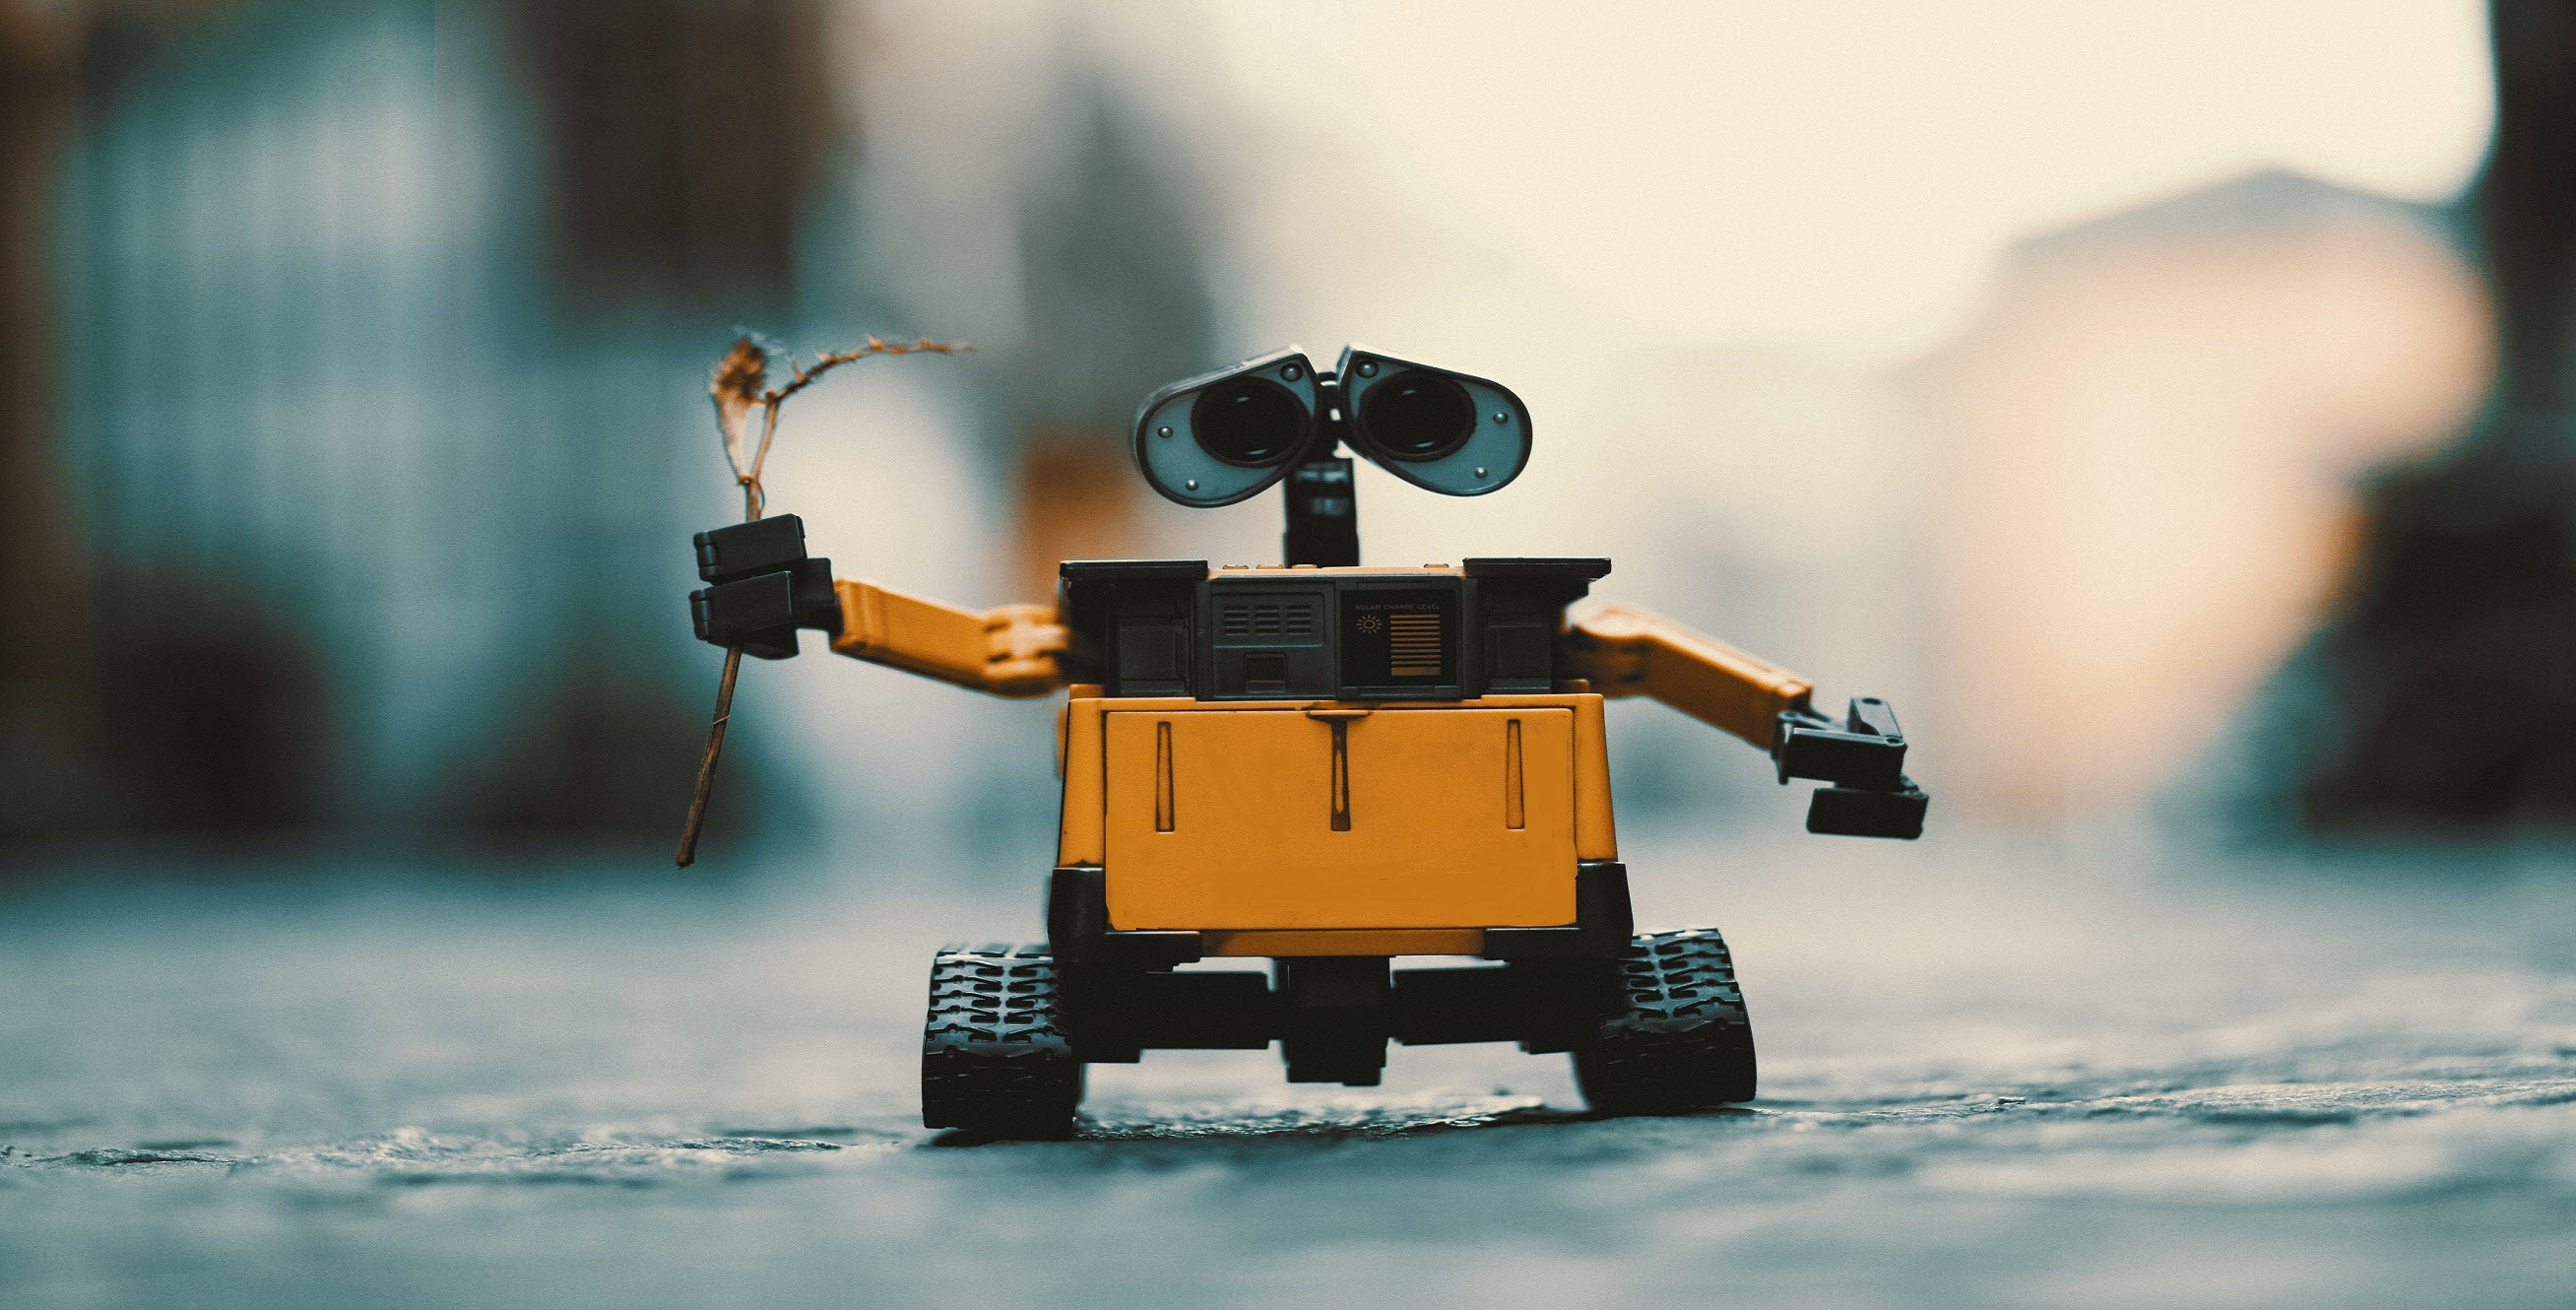 robots, technology, construction, pexels, 270318, mb